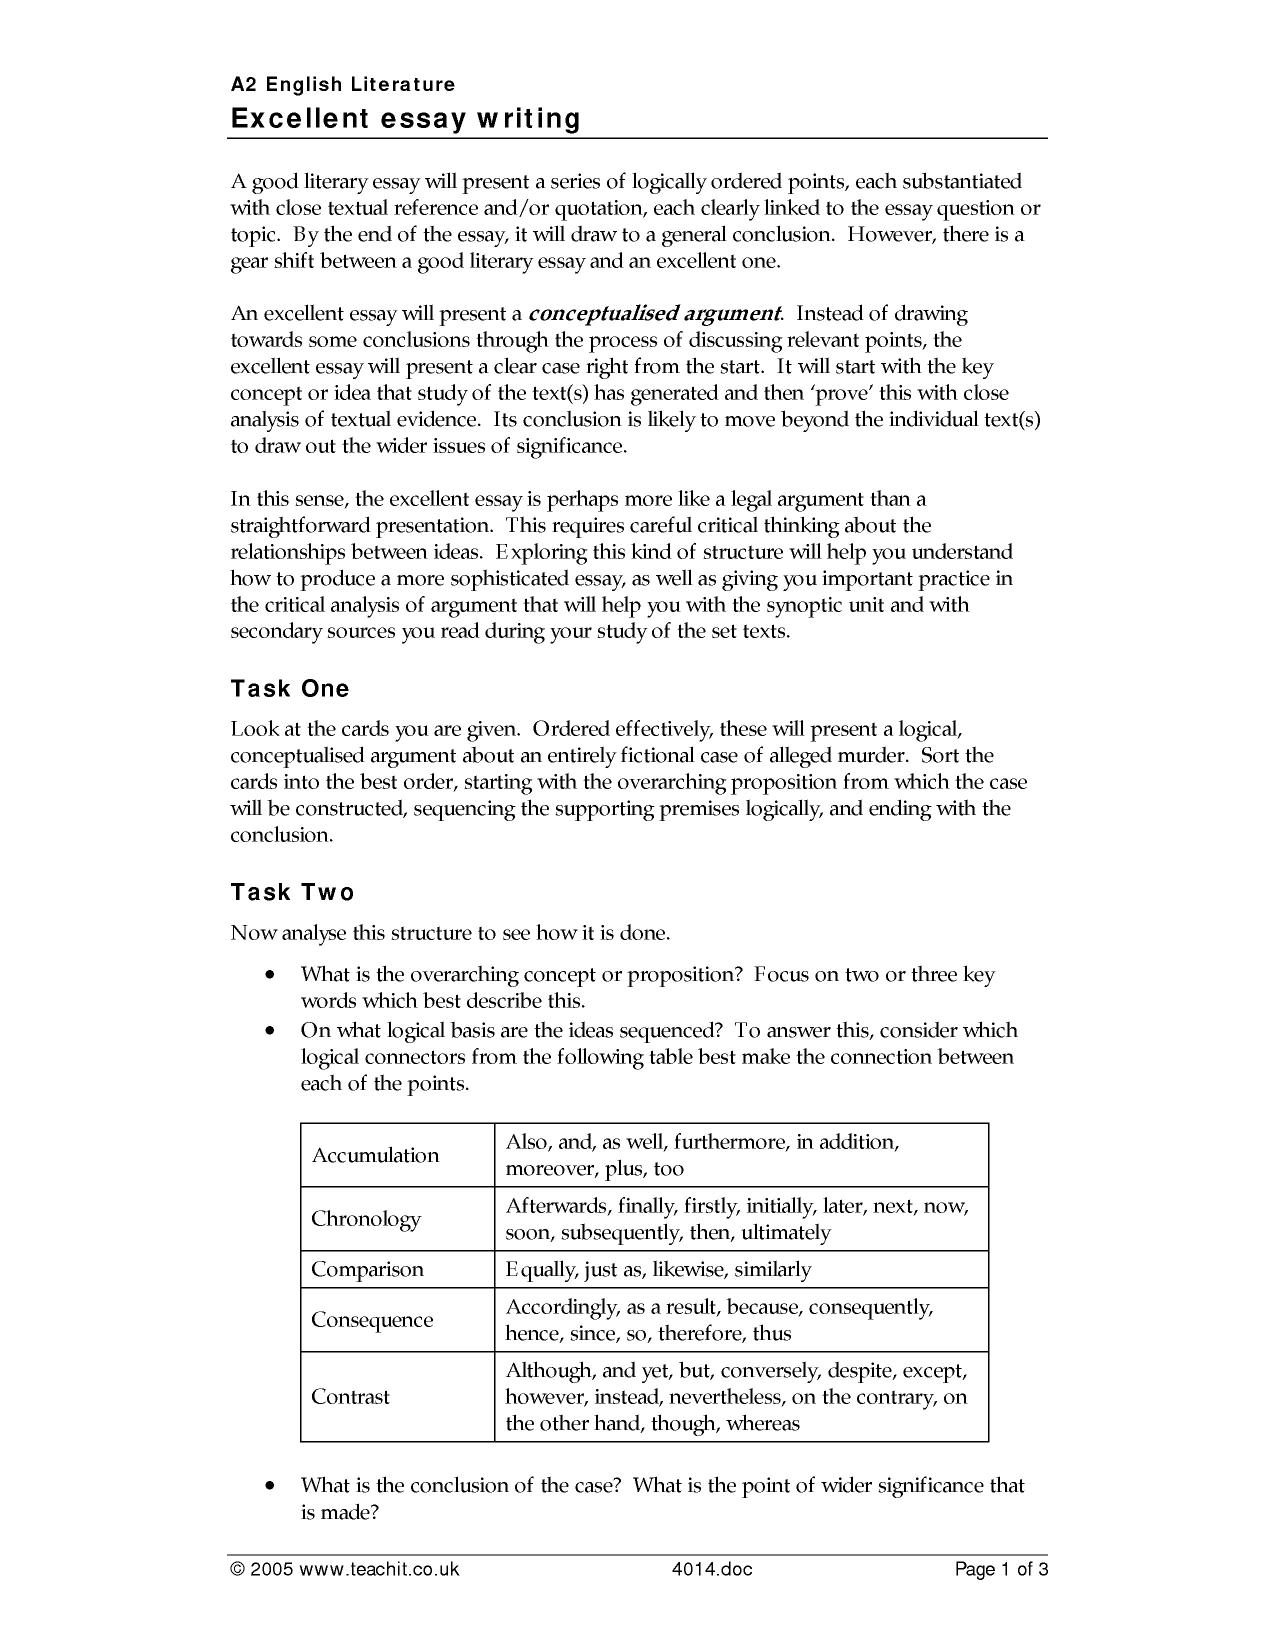 essay writing skills key stage 5 english literature key 4 preview